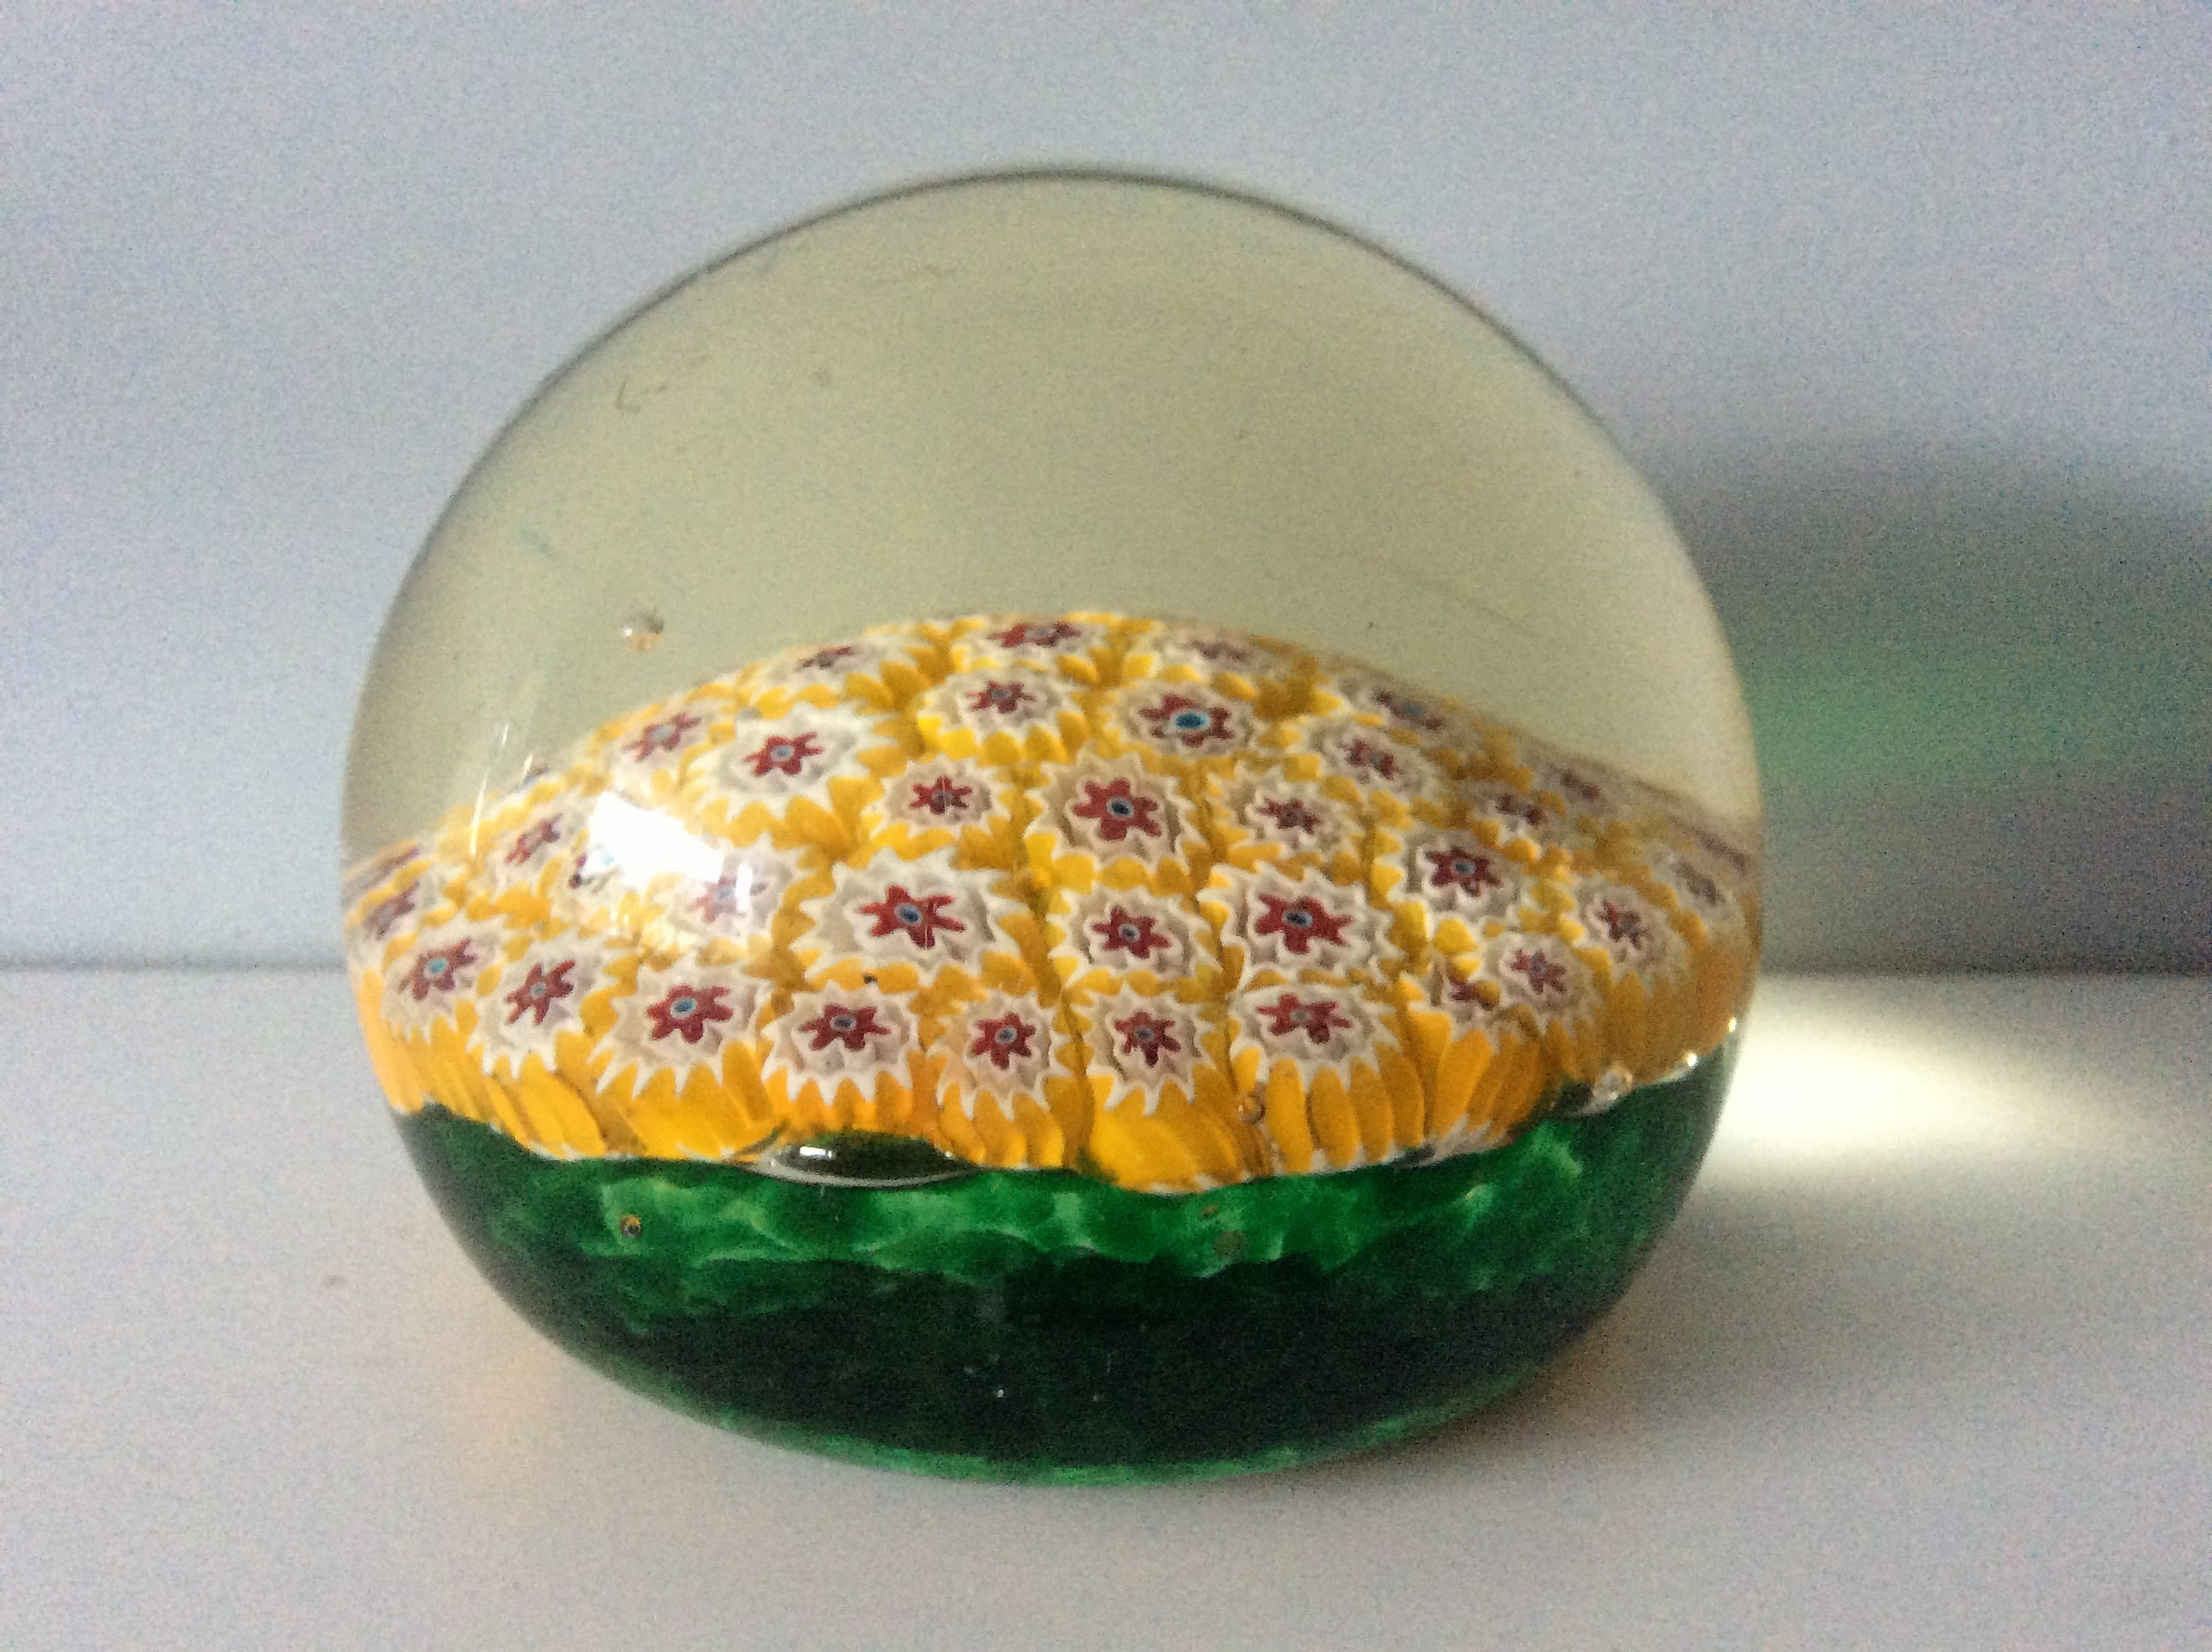 Offered for sale is a superb 60s vintage Murano glass paperweight most likely from  Fratelli Toso.